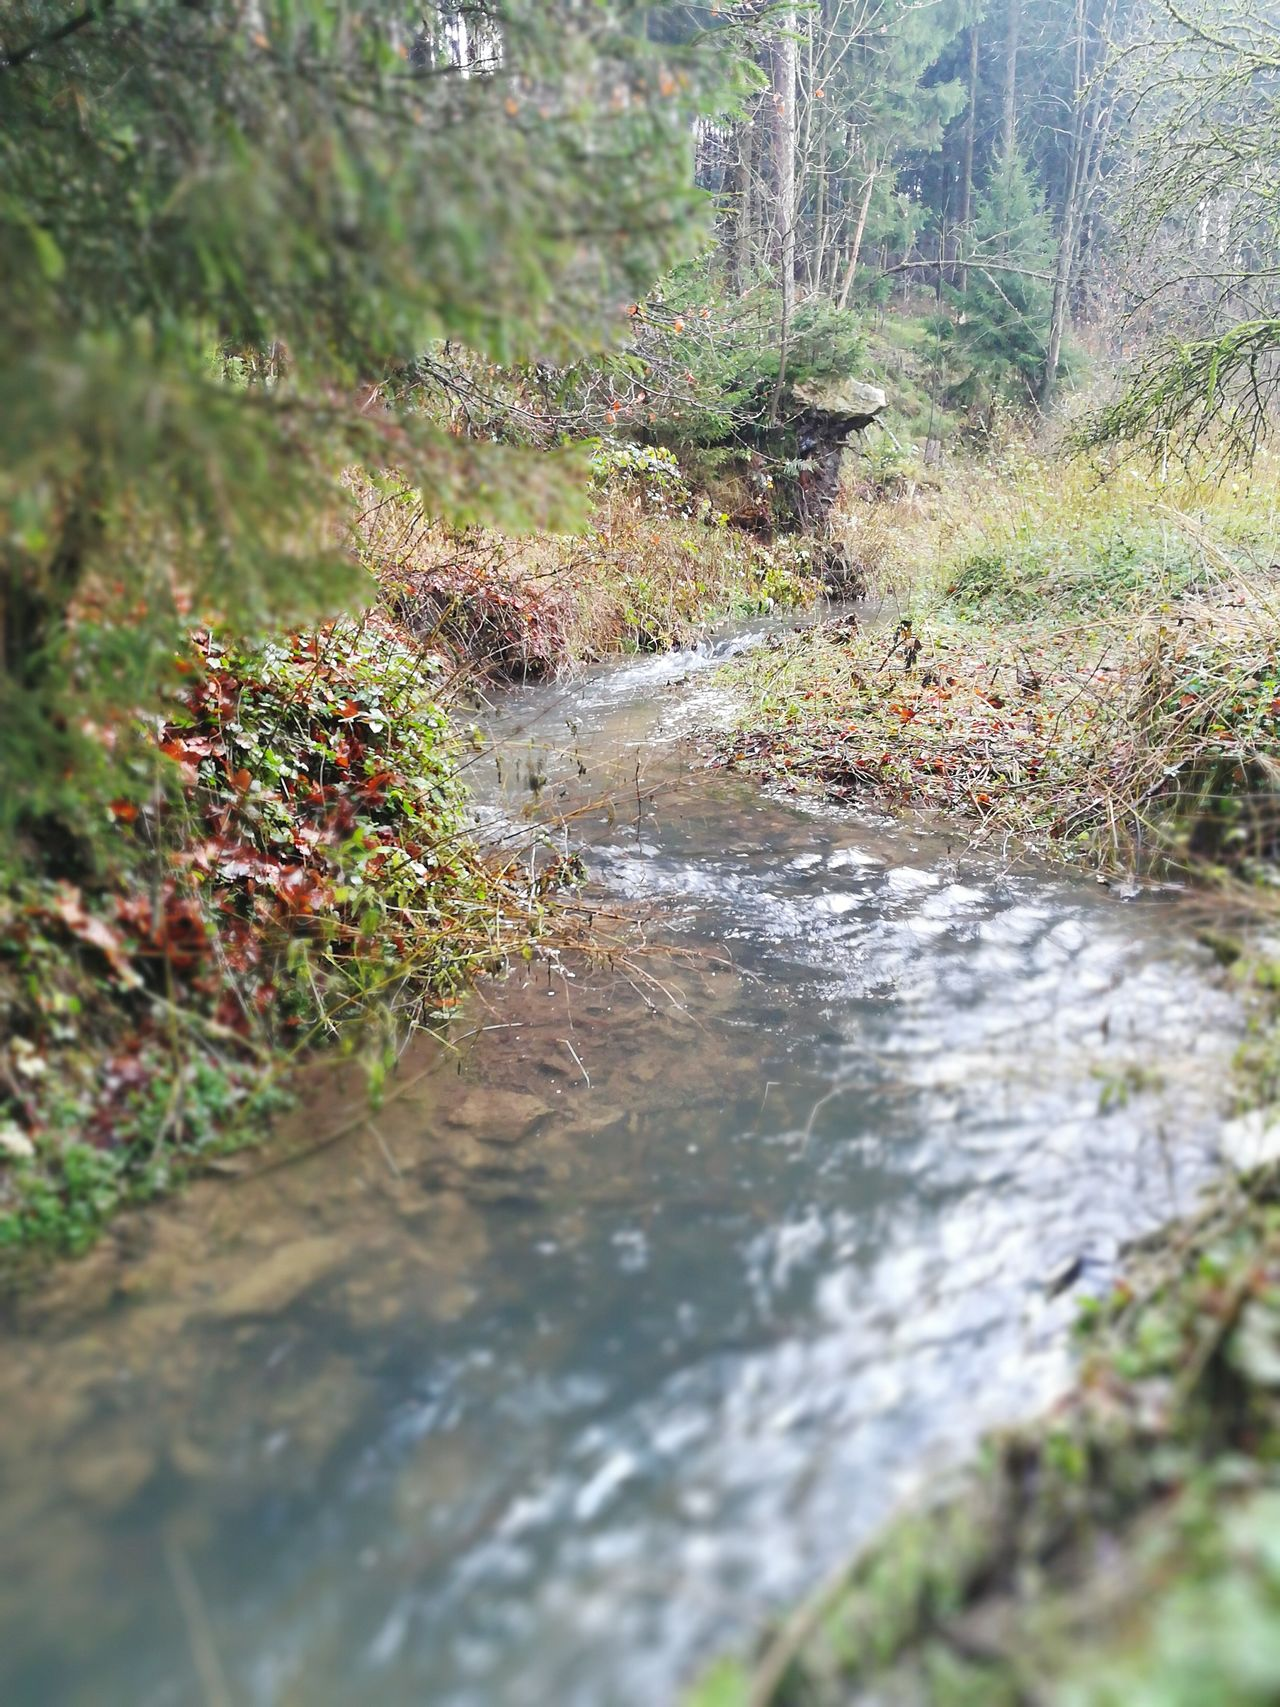 Silverriver Silberbach Silberbachtal Herbststimmung Veldrom Feldrom Horn-Bad Meinberg Nature Water No People Outdoors Day Beauty In Nature Tree Fishing Eggeturm Teutoburger Wald Teutoburg Forest